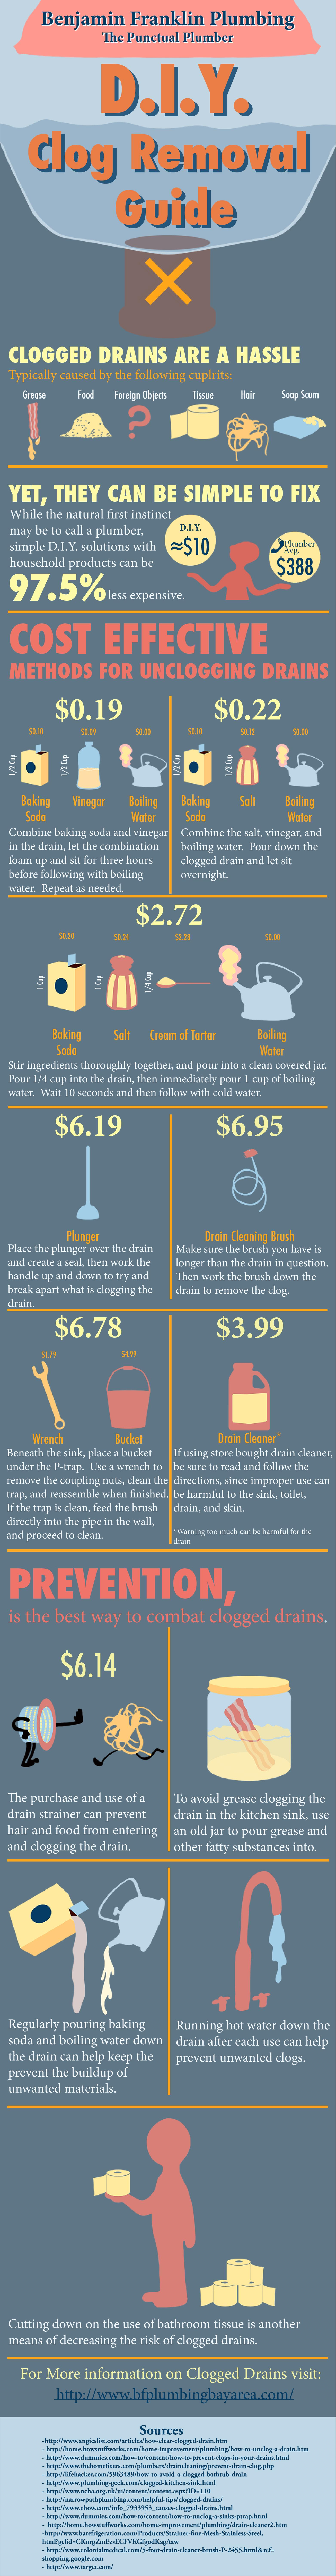 D.I.Y. How To Unclog Drains - An Infographic from Infographics Showcase